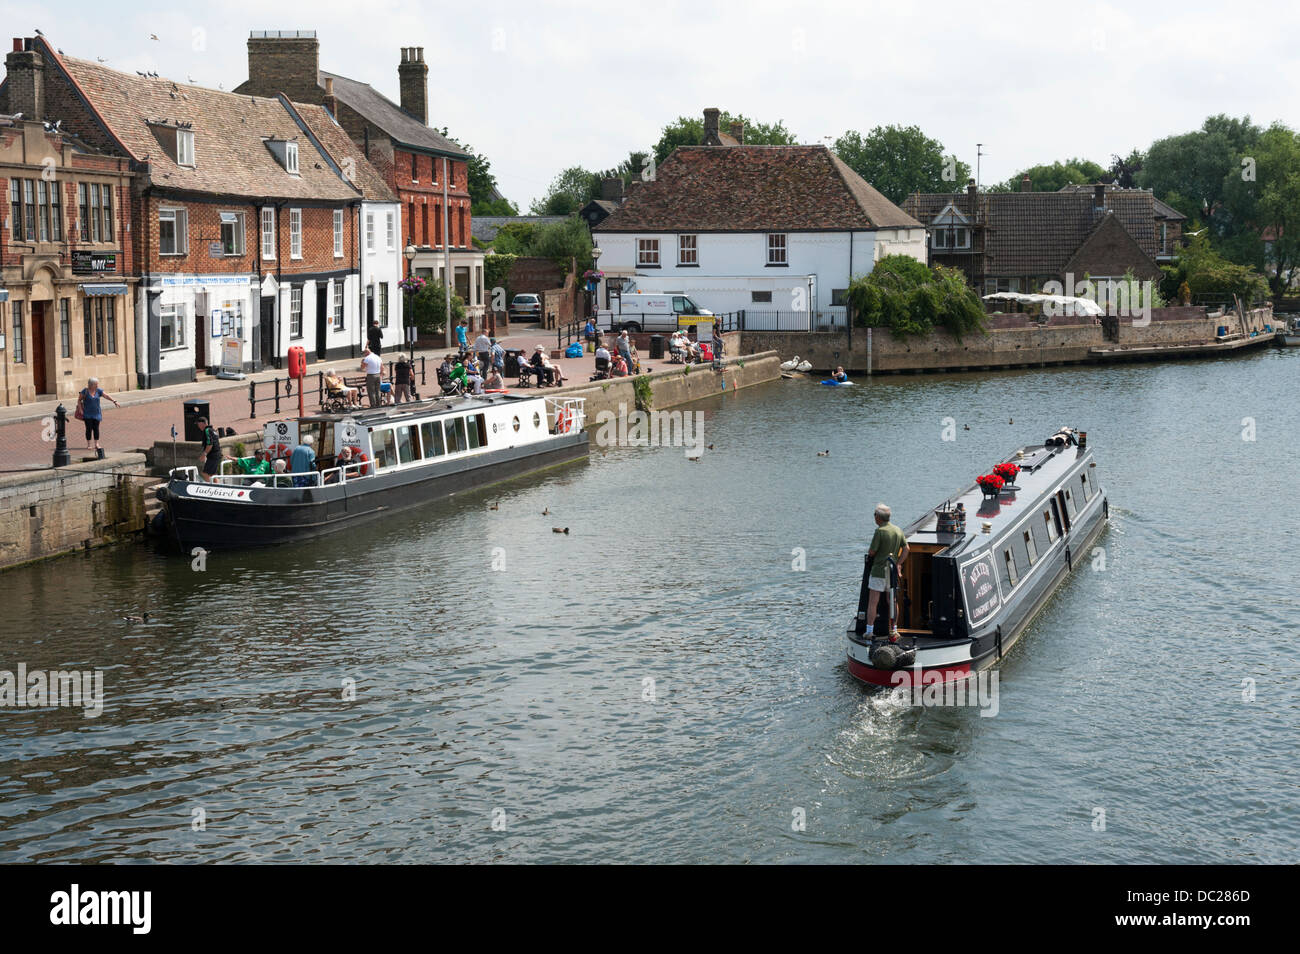 A narrowboat or longboat on the River Great Ouse St Ives Cambridgeshire UK on a sunny summer day - Stock Image